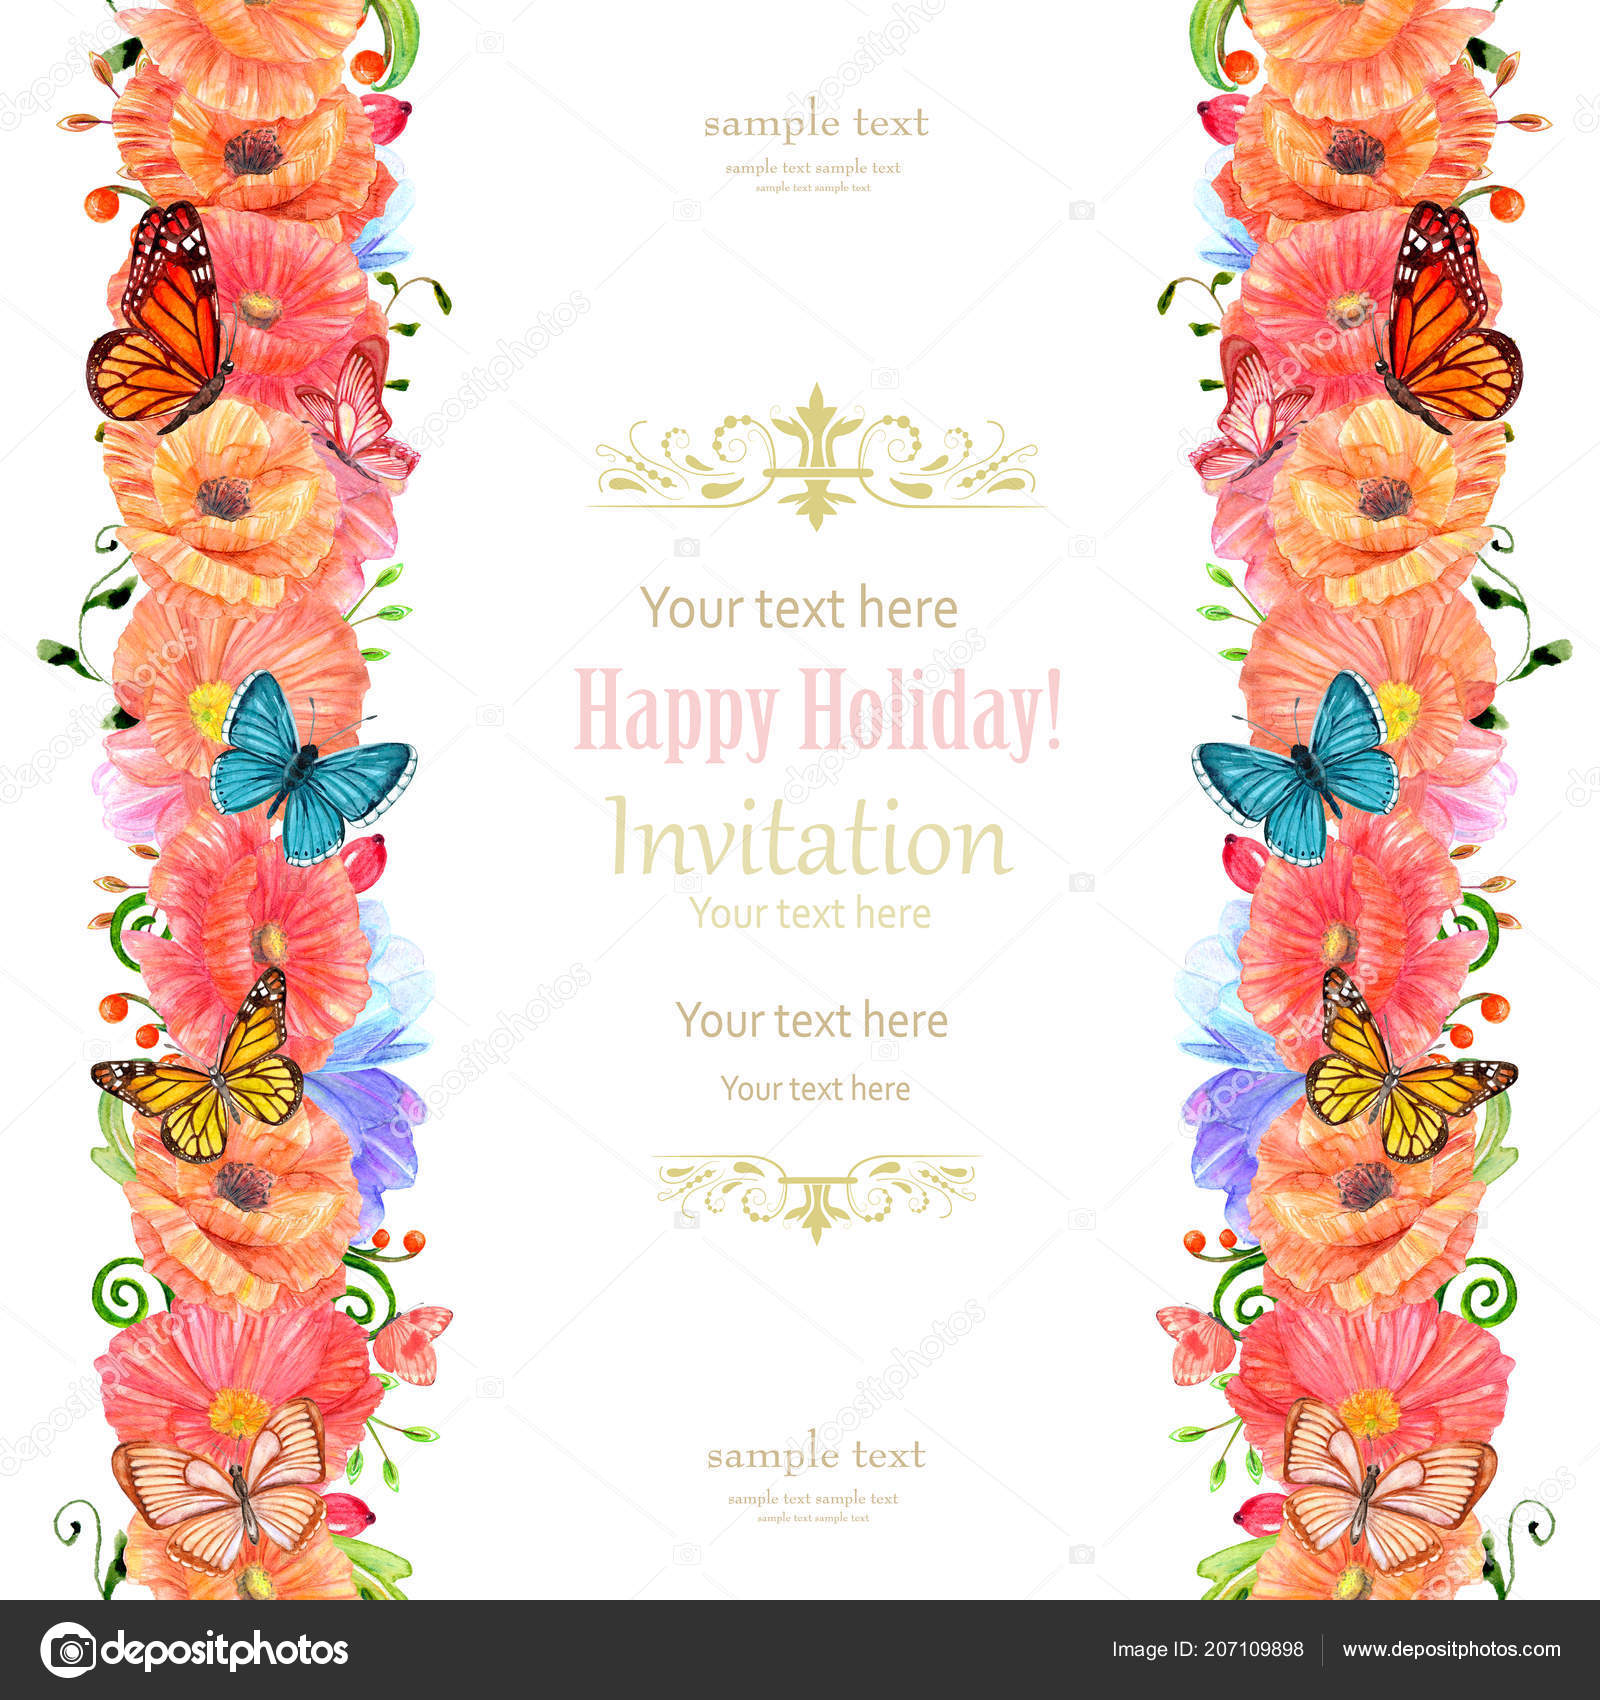 Invitation Card Vertical Floral Seamless Borders Stock